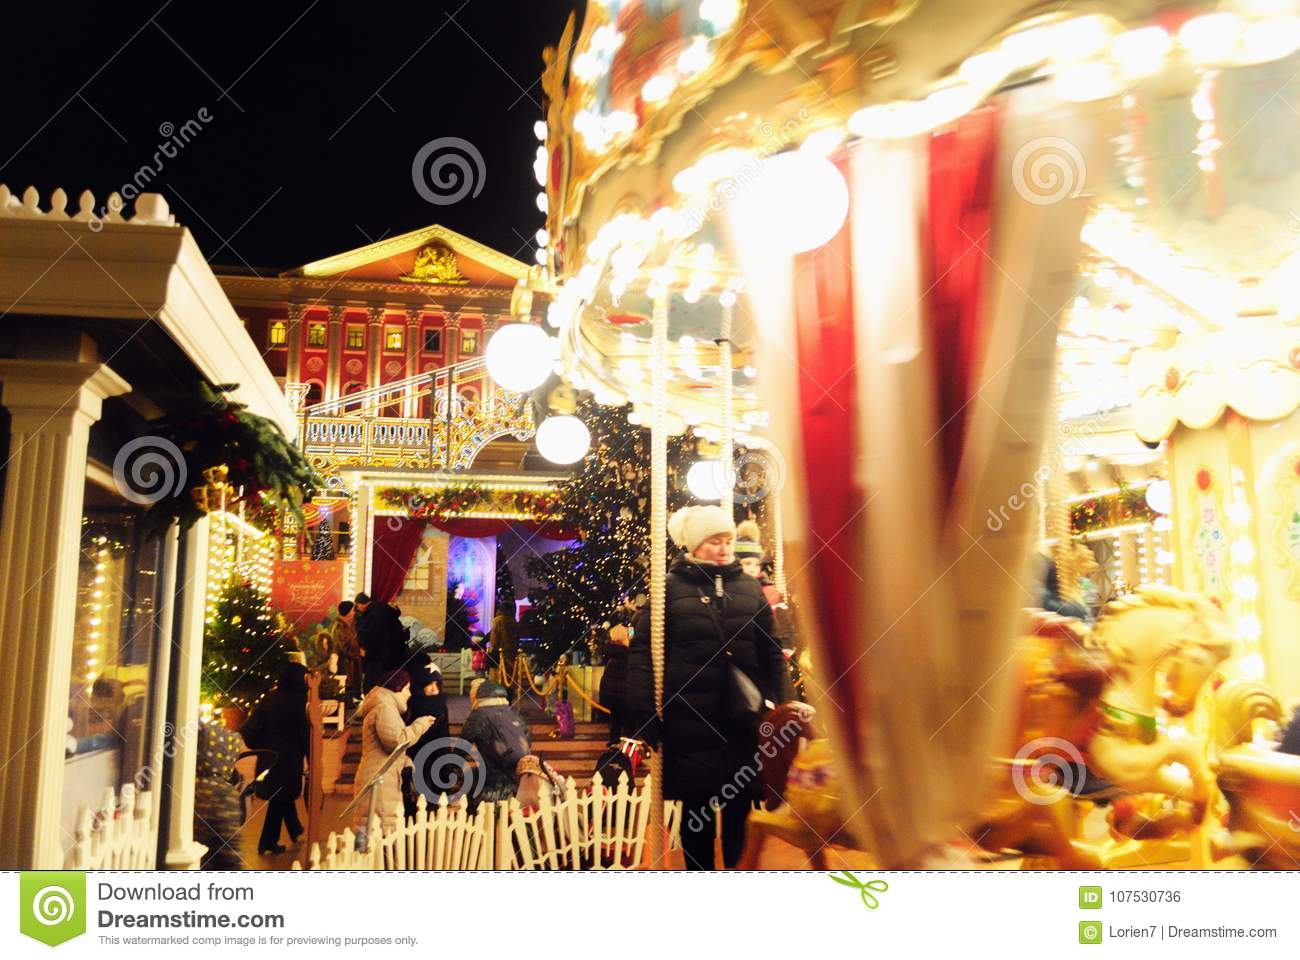 Winter Holidays Festivities with a Carousel near Mayor`s Office in Moscow, Russia